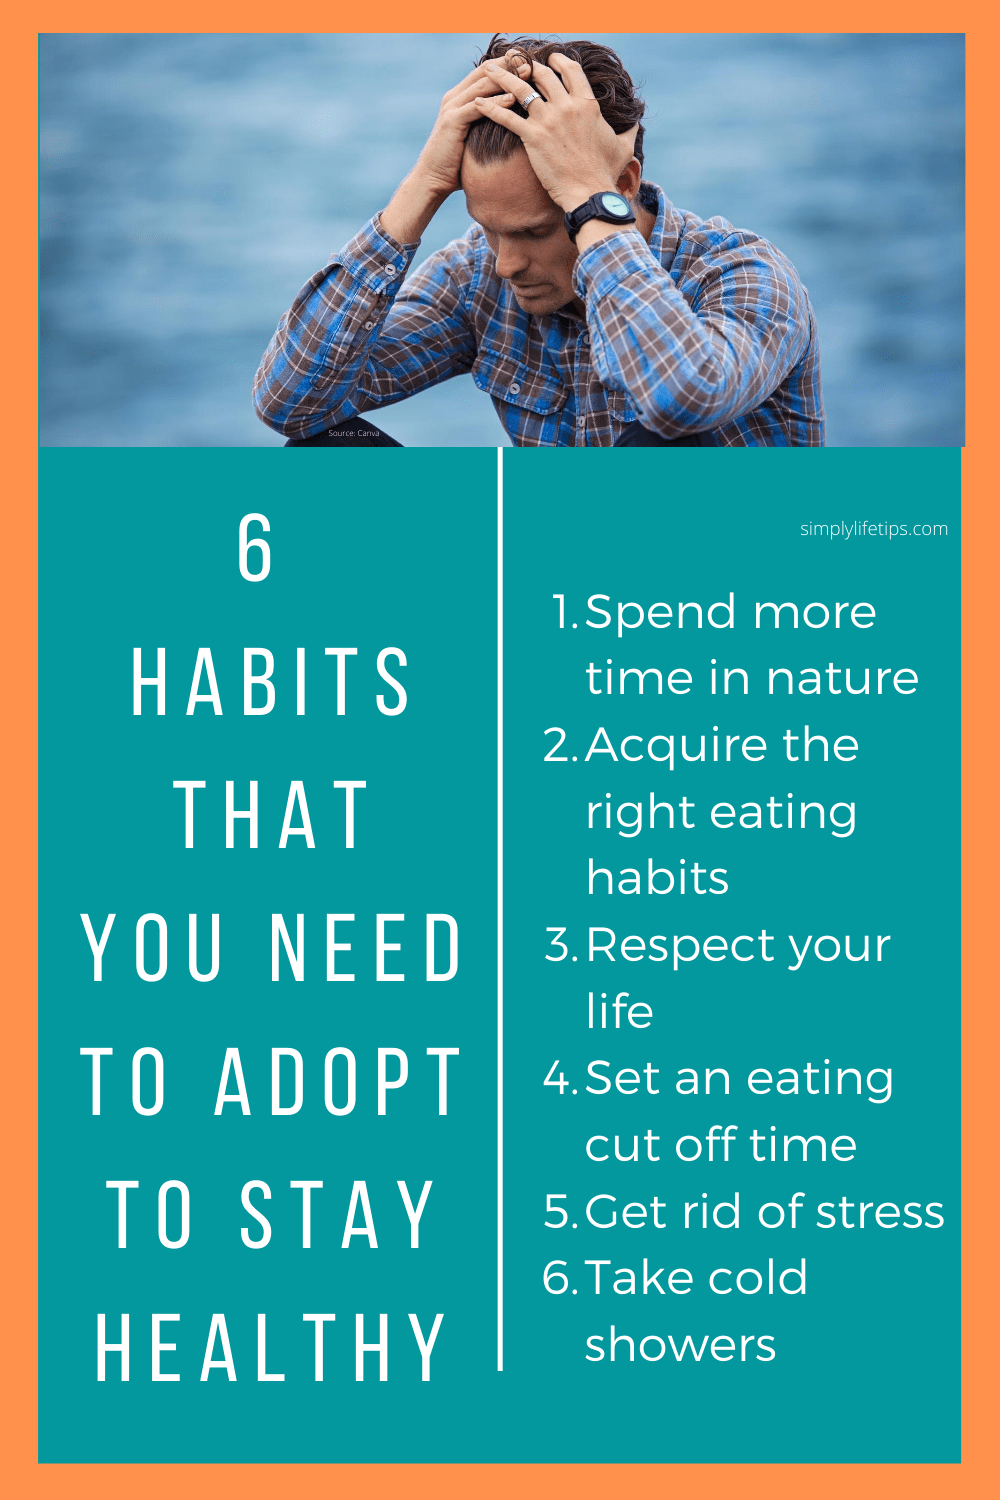 Stay Healthy Habits